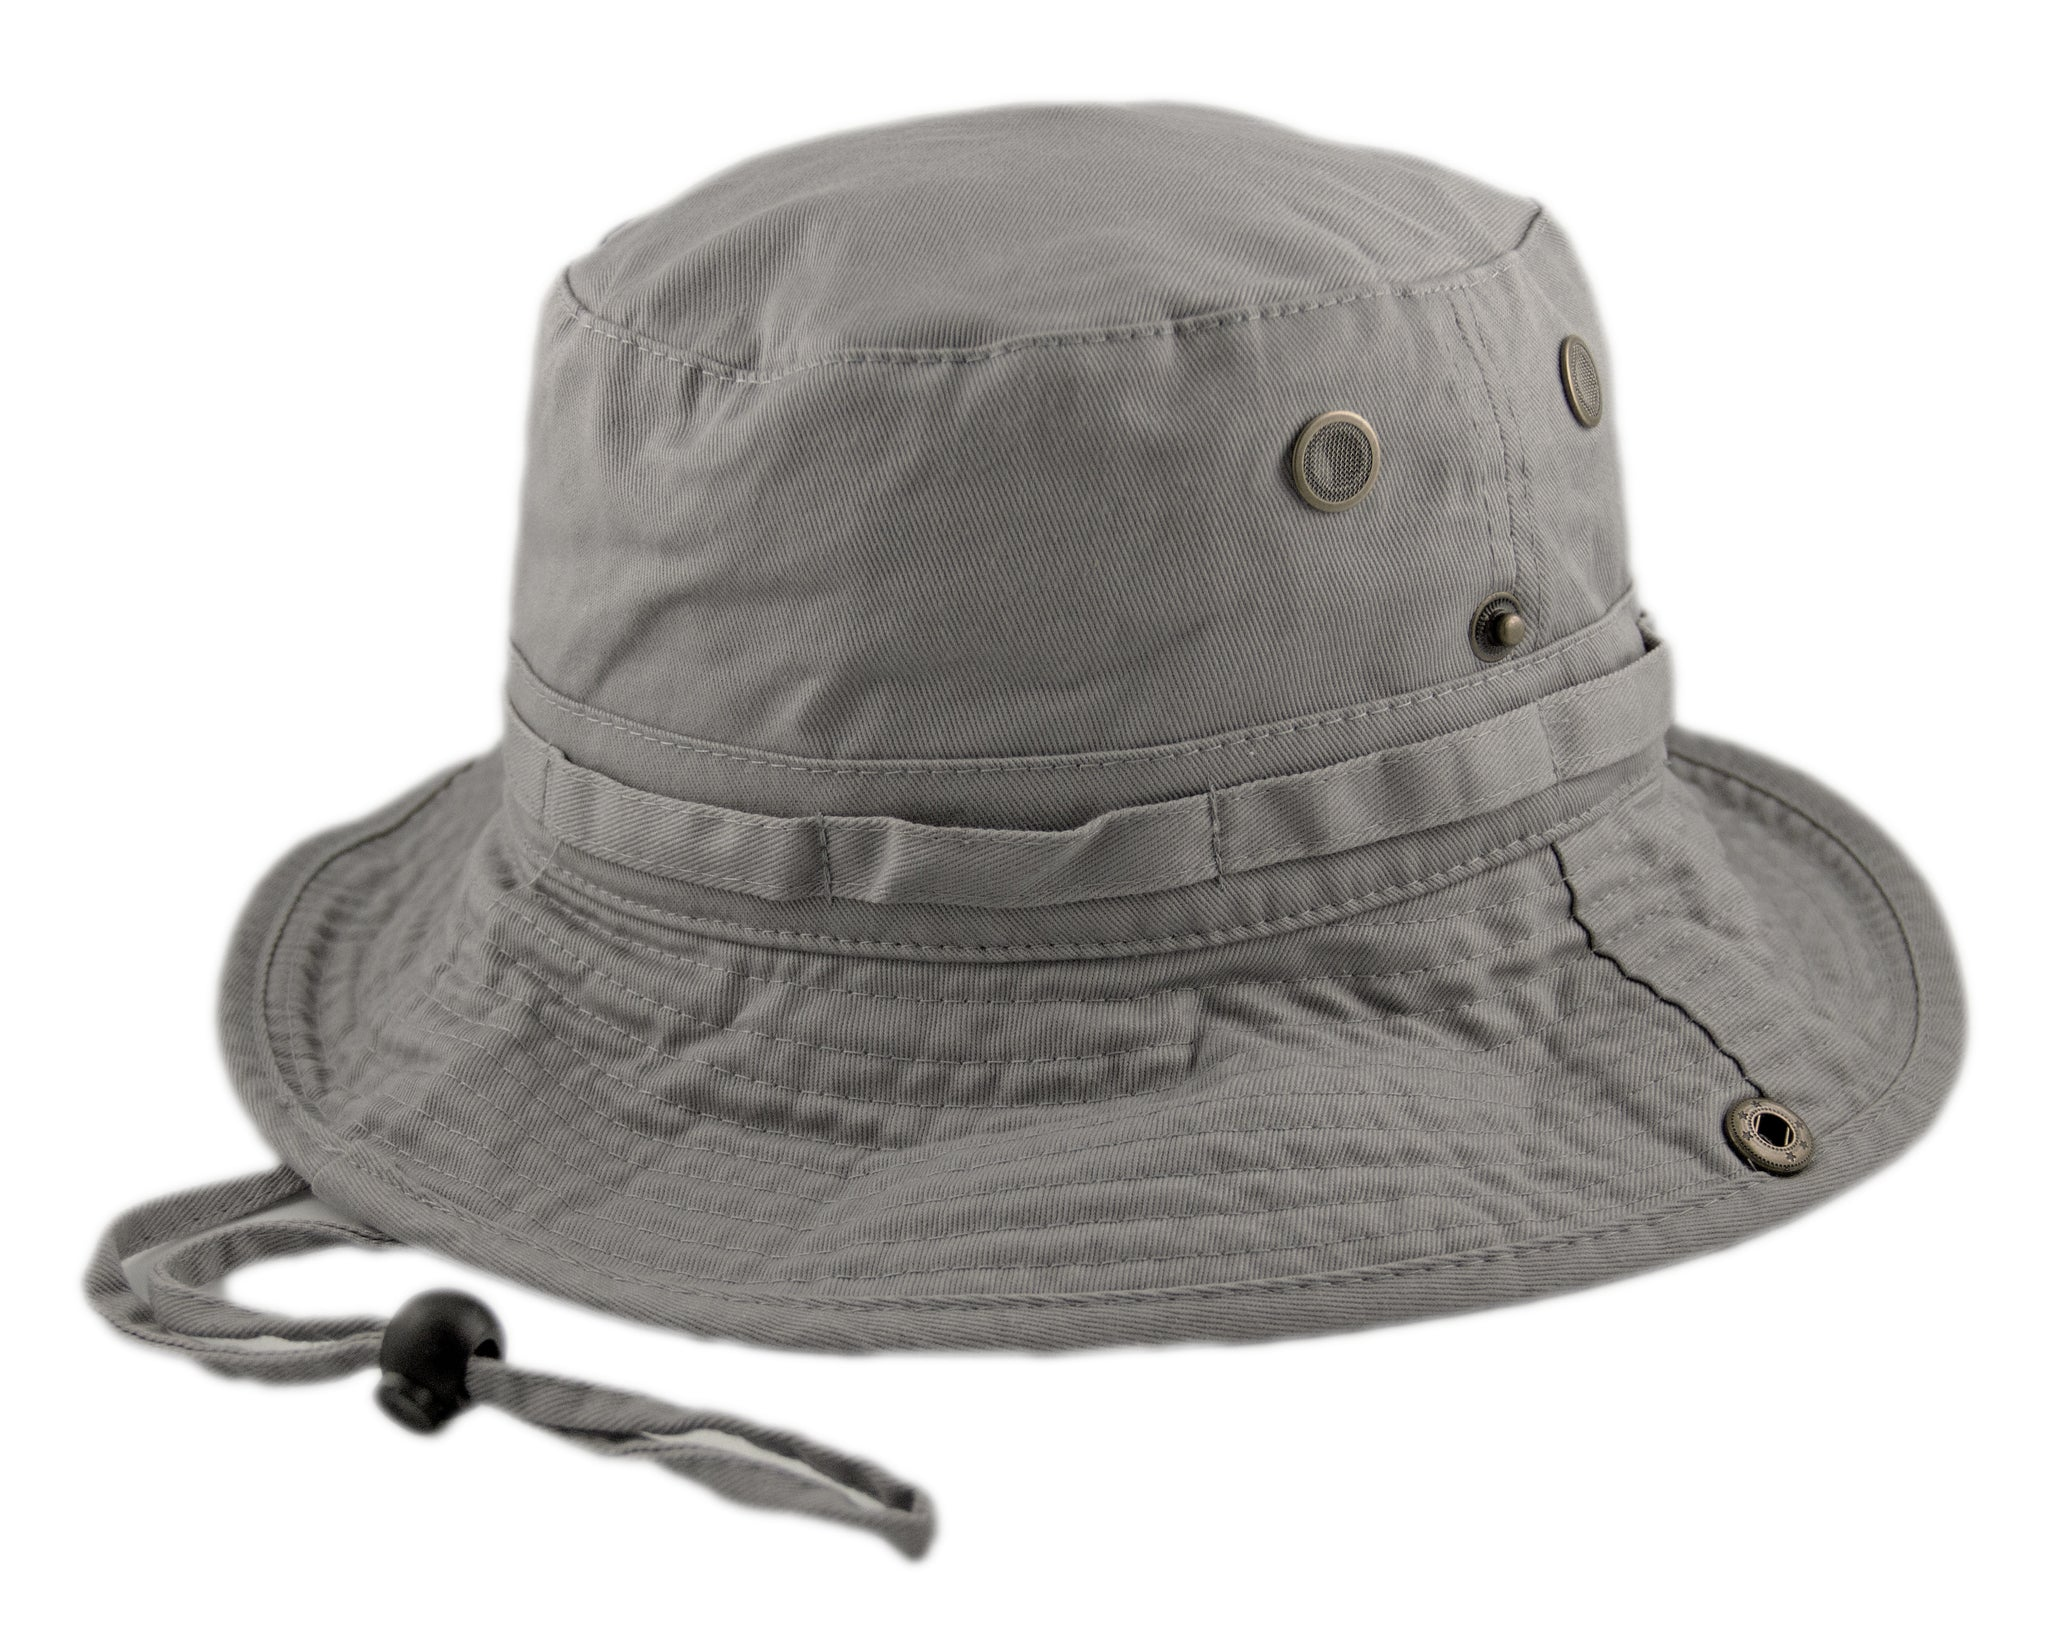 Boonie Hat - Light Grey - HATCOcaps.com f847bd85c1b